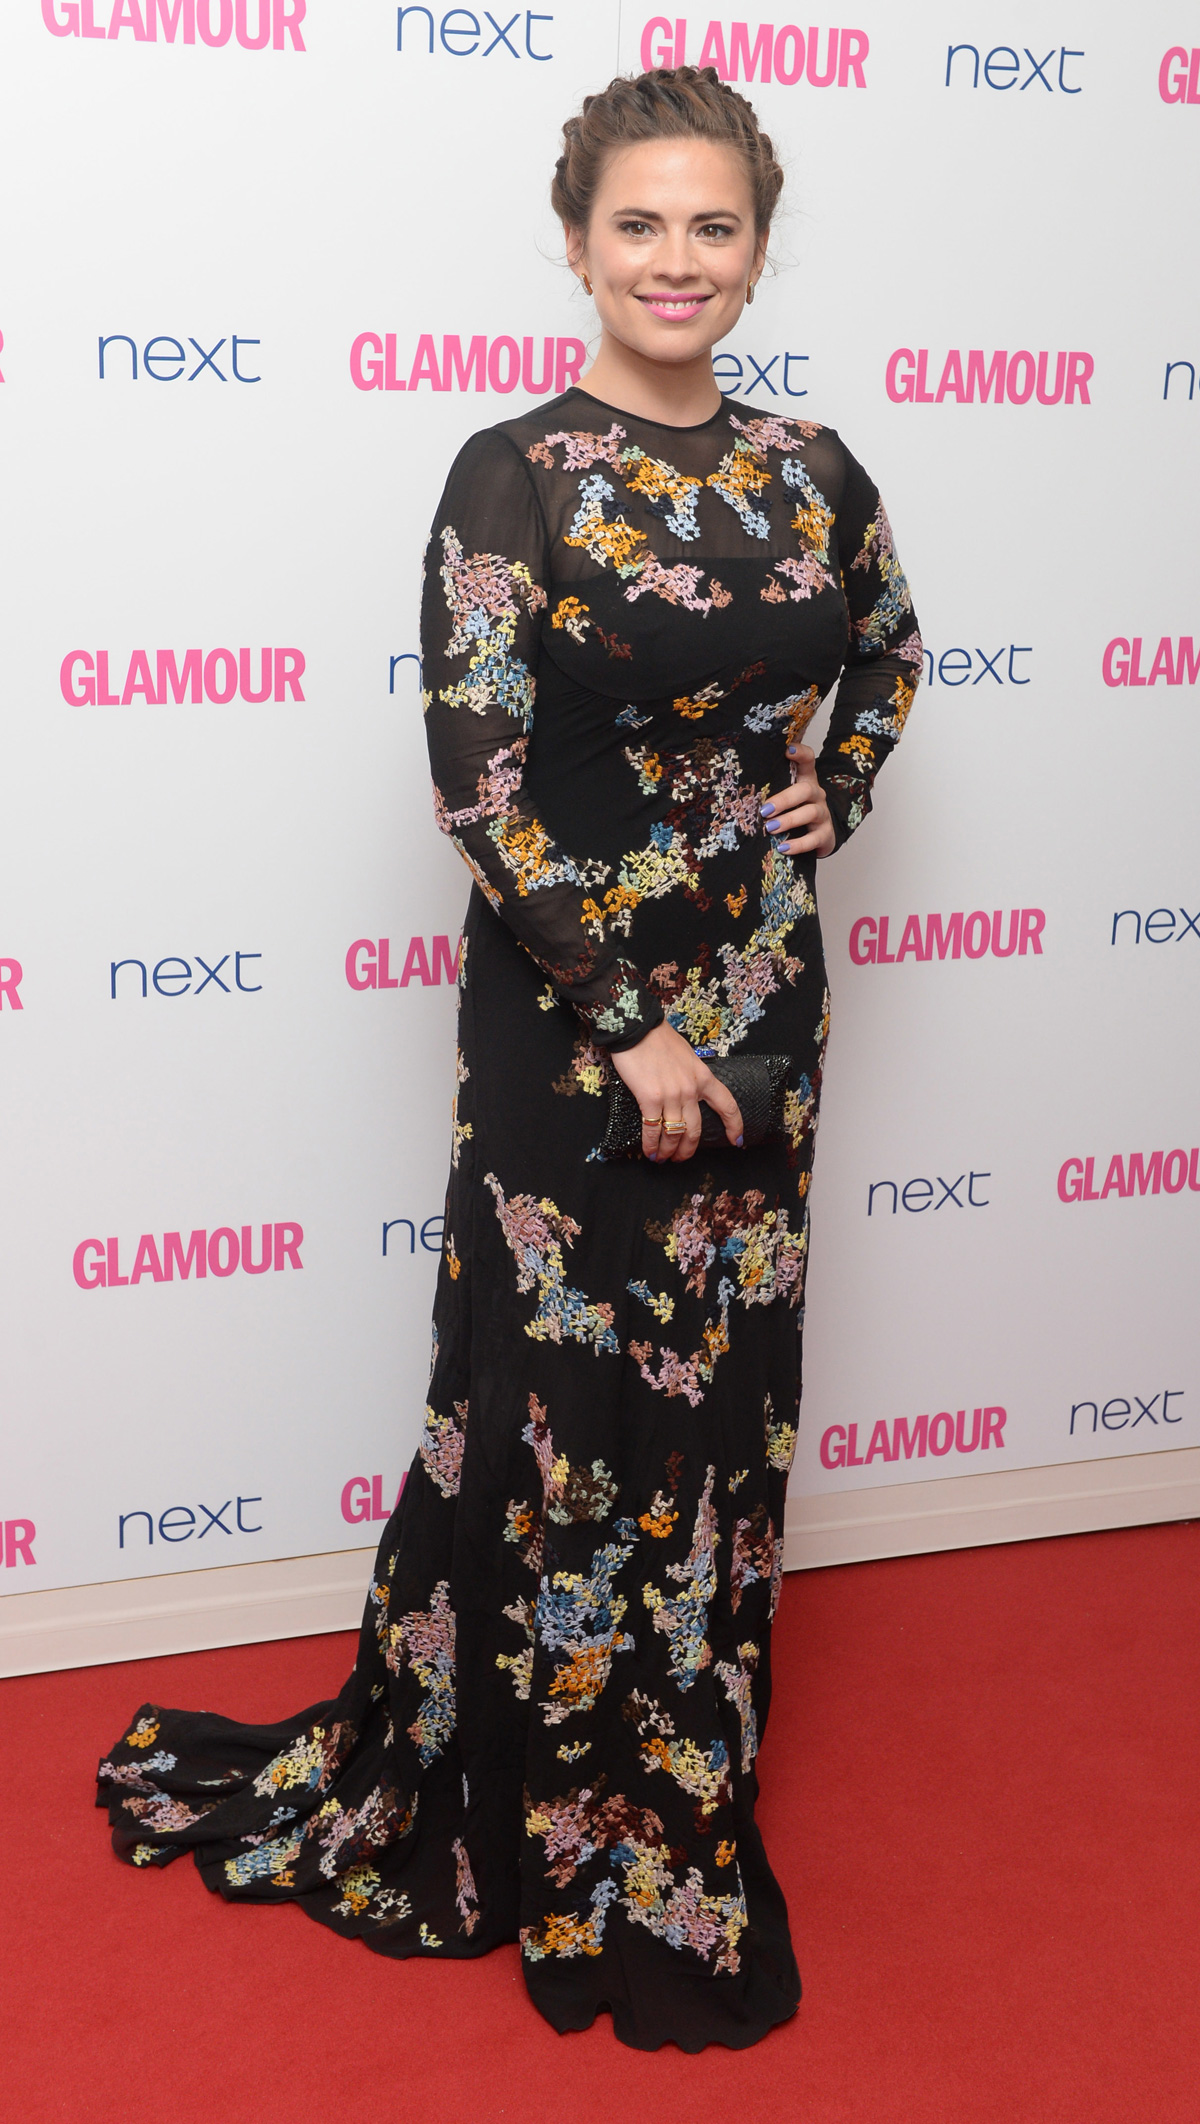 Hayley Atwell at the Glamour Women of the Year Awards